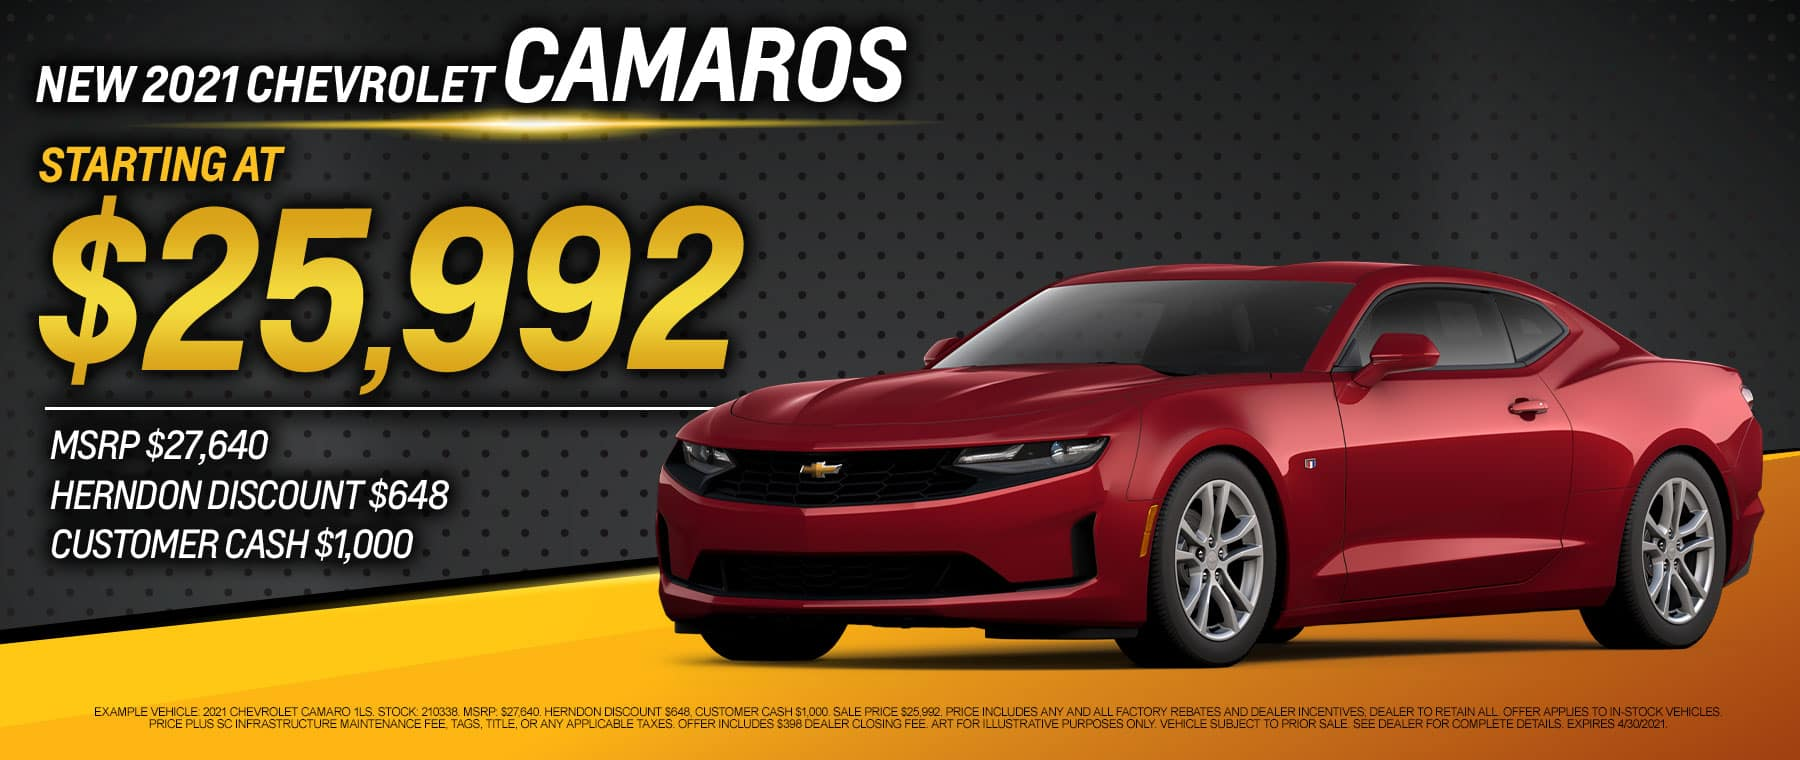 HECH84578-01-March-Campaign-Slides-1800×760-Transition-camaro